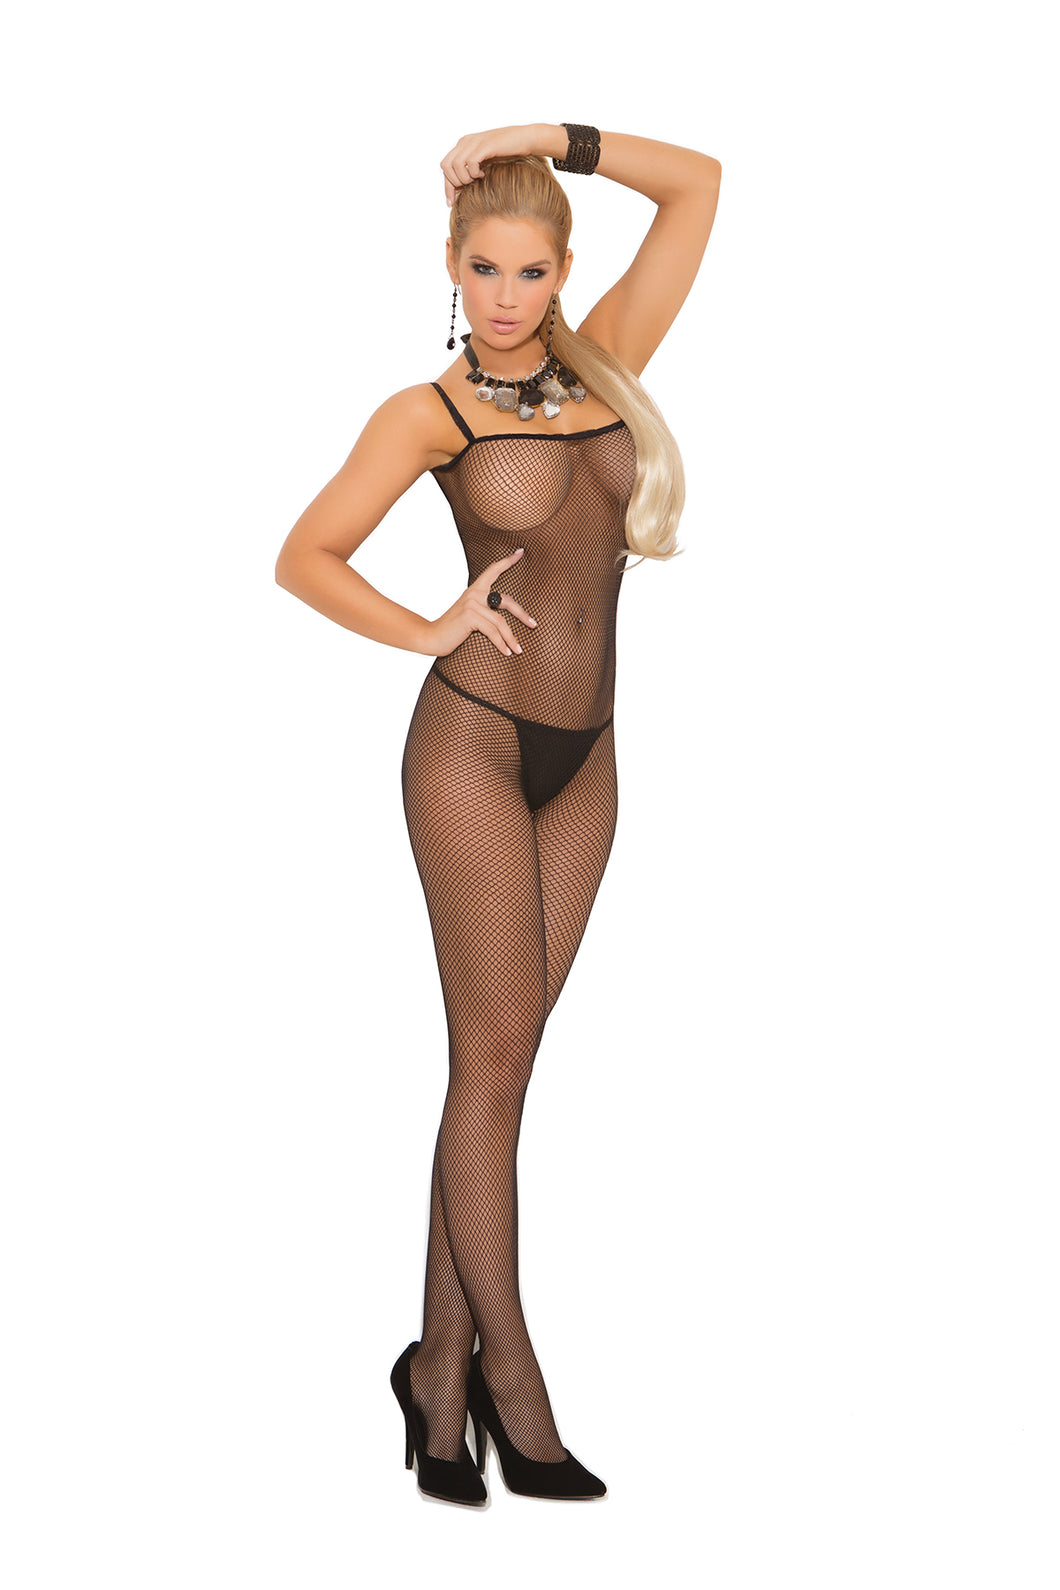 Fishnet Criss Cross Body Stocking Style - Black -  One Size EM-1611B